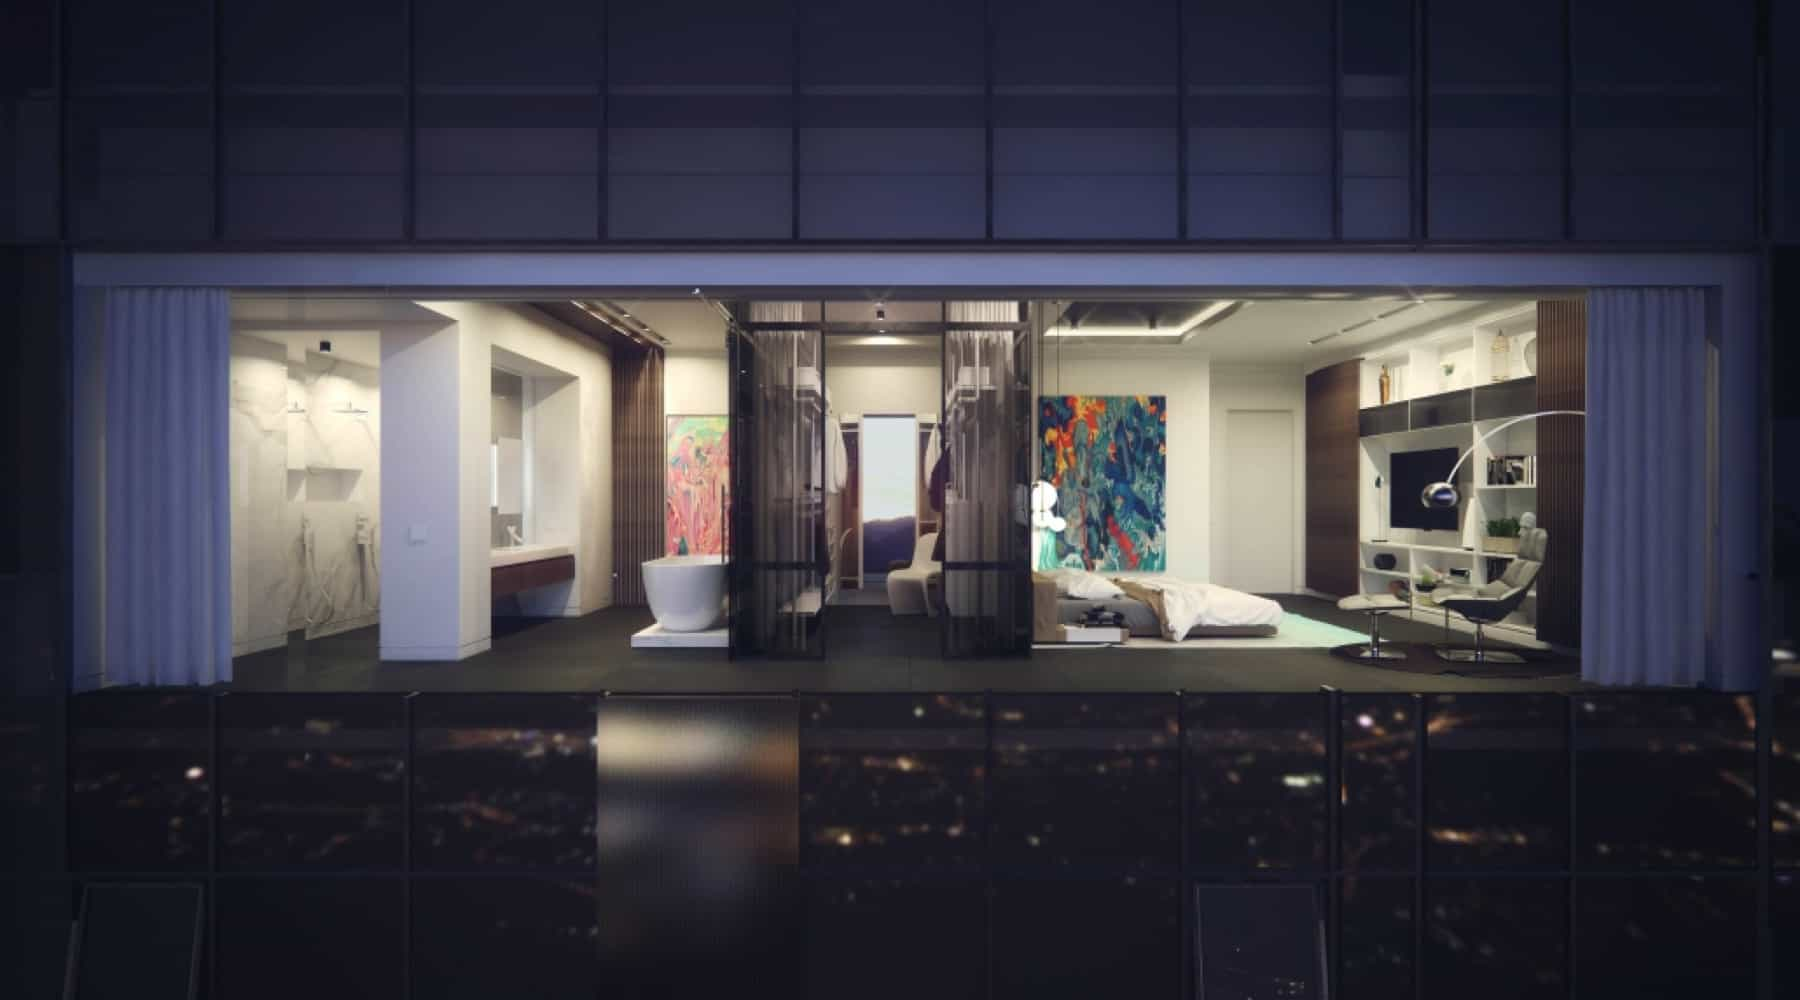 Penthouse_2_Rendering_Night